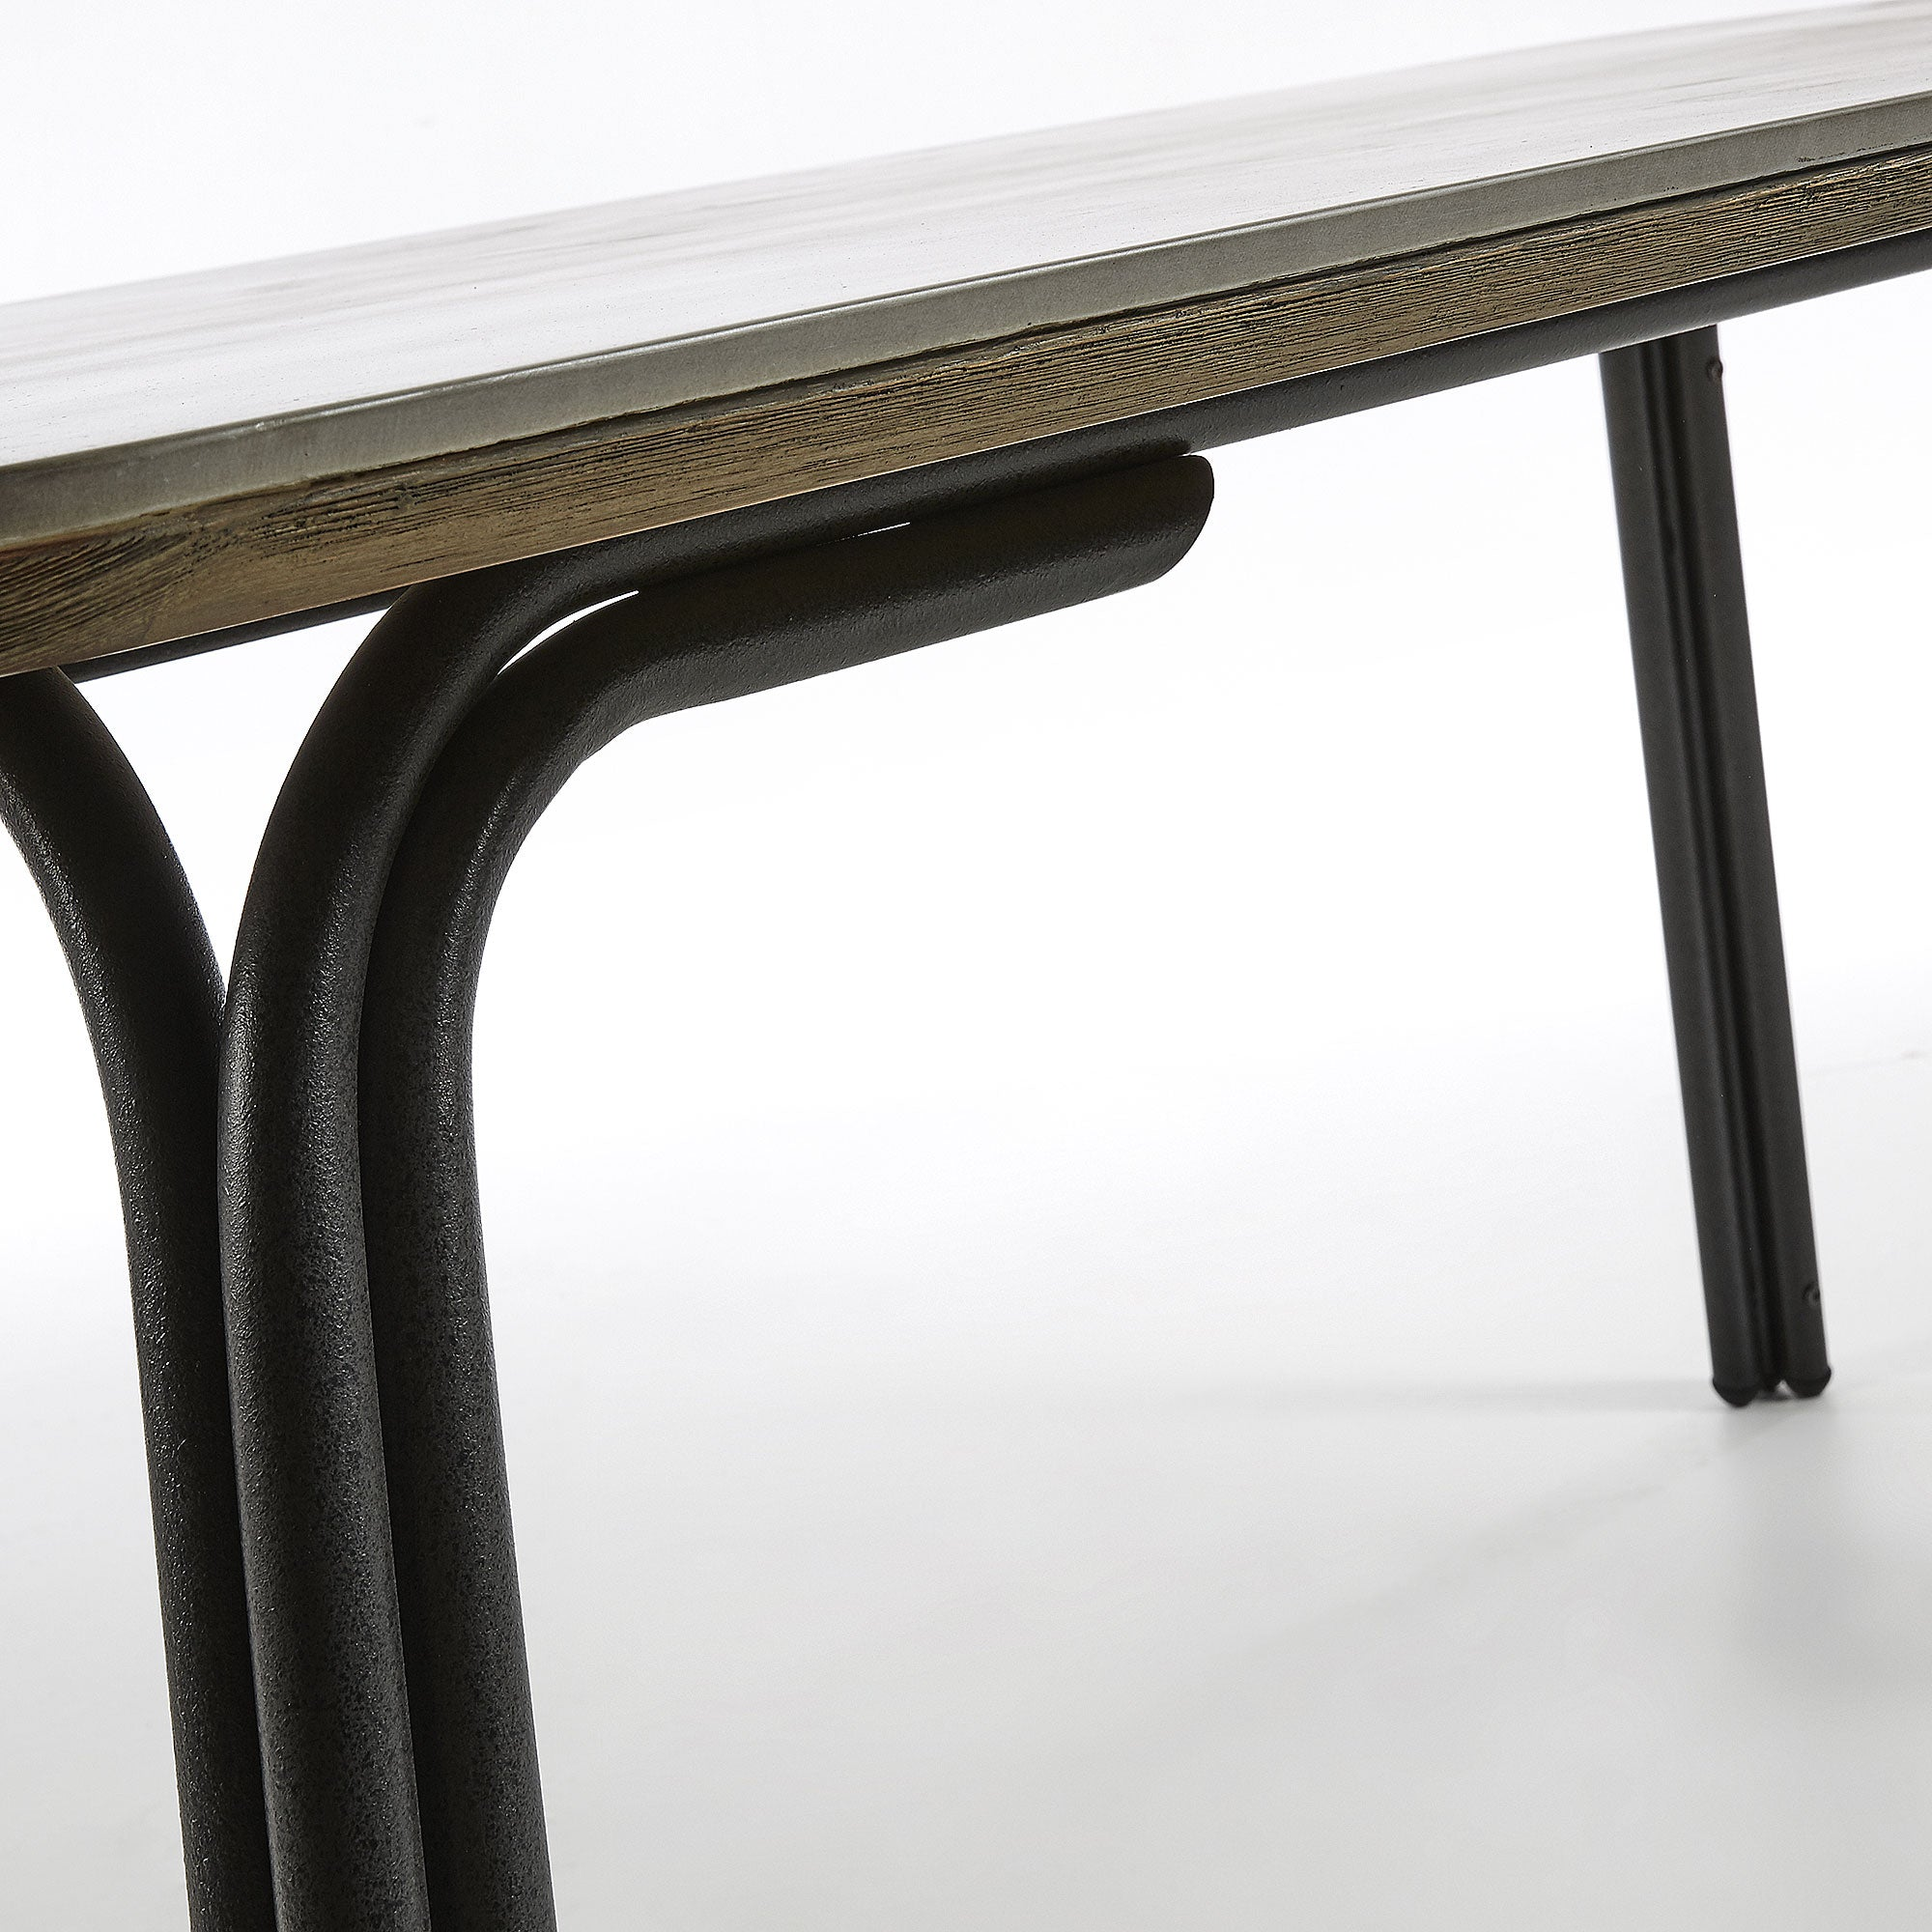 Vermont Table 180cm metal frame poly-cement top, Table - Home-Buy Interiors